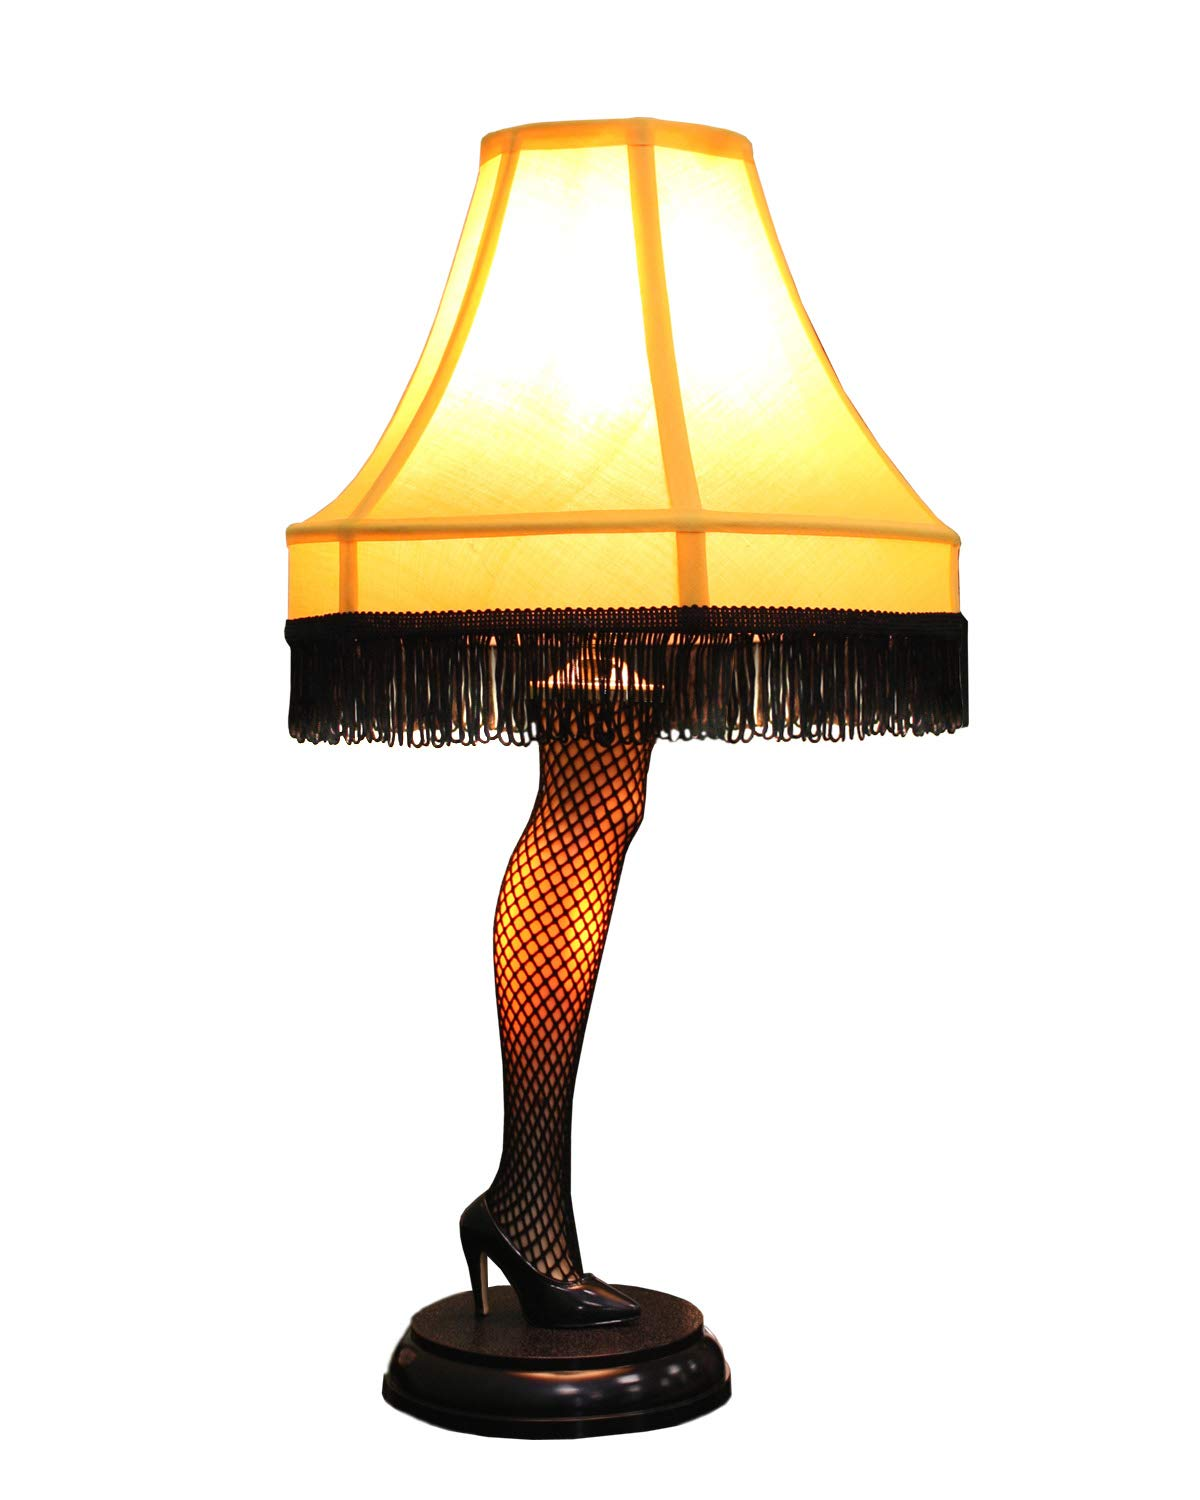 B0000C6ECF A Christmas Story 20 inch Leg Lamp Prop Replica by NECA | Holiday Gift |Desk Lamp | Same lamp used in movie 61yZD4-mKjL